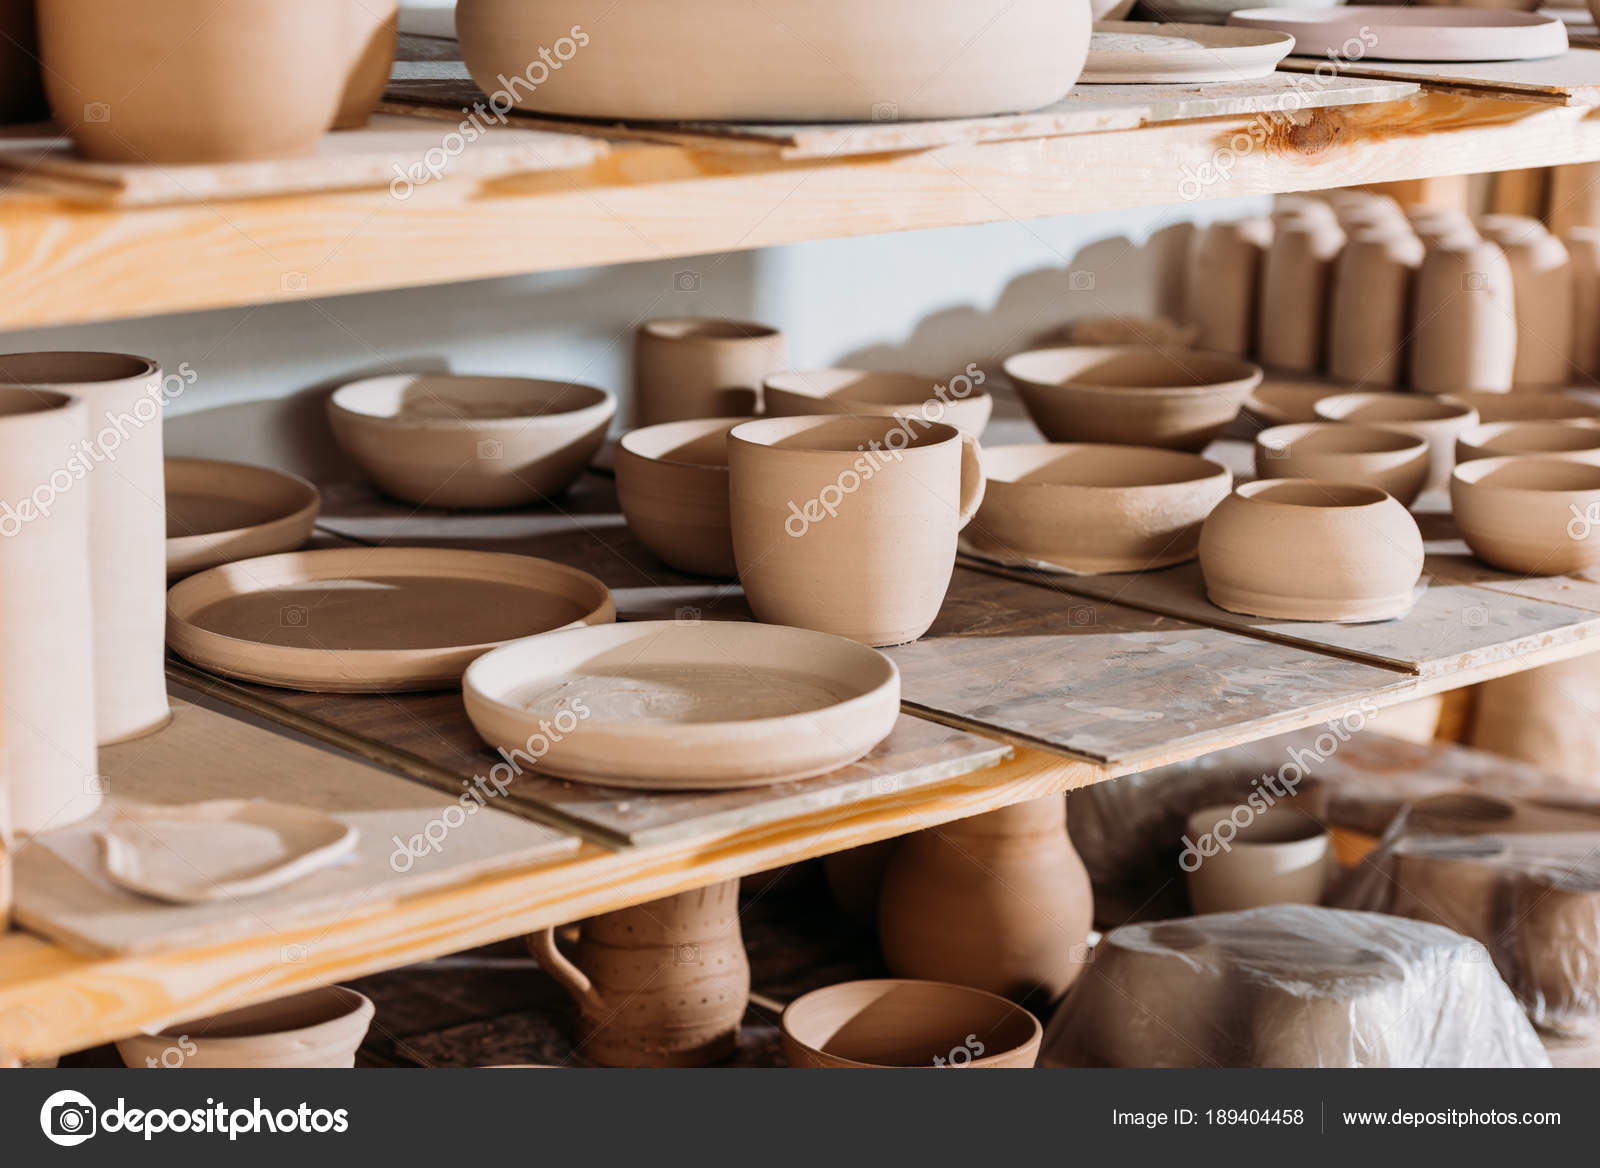 Ceramic plates and bowls on wooden shelves in pottery workshop u2014 Photo by IgorVetushko & Ceramic Plates Bowls Wooden Shelves Pottery Workshop u2014 Stock Photo ...